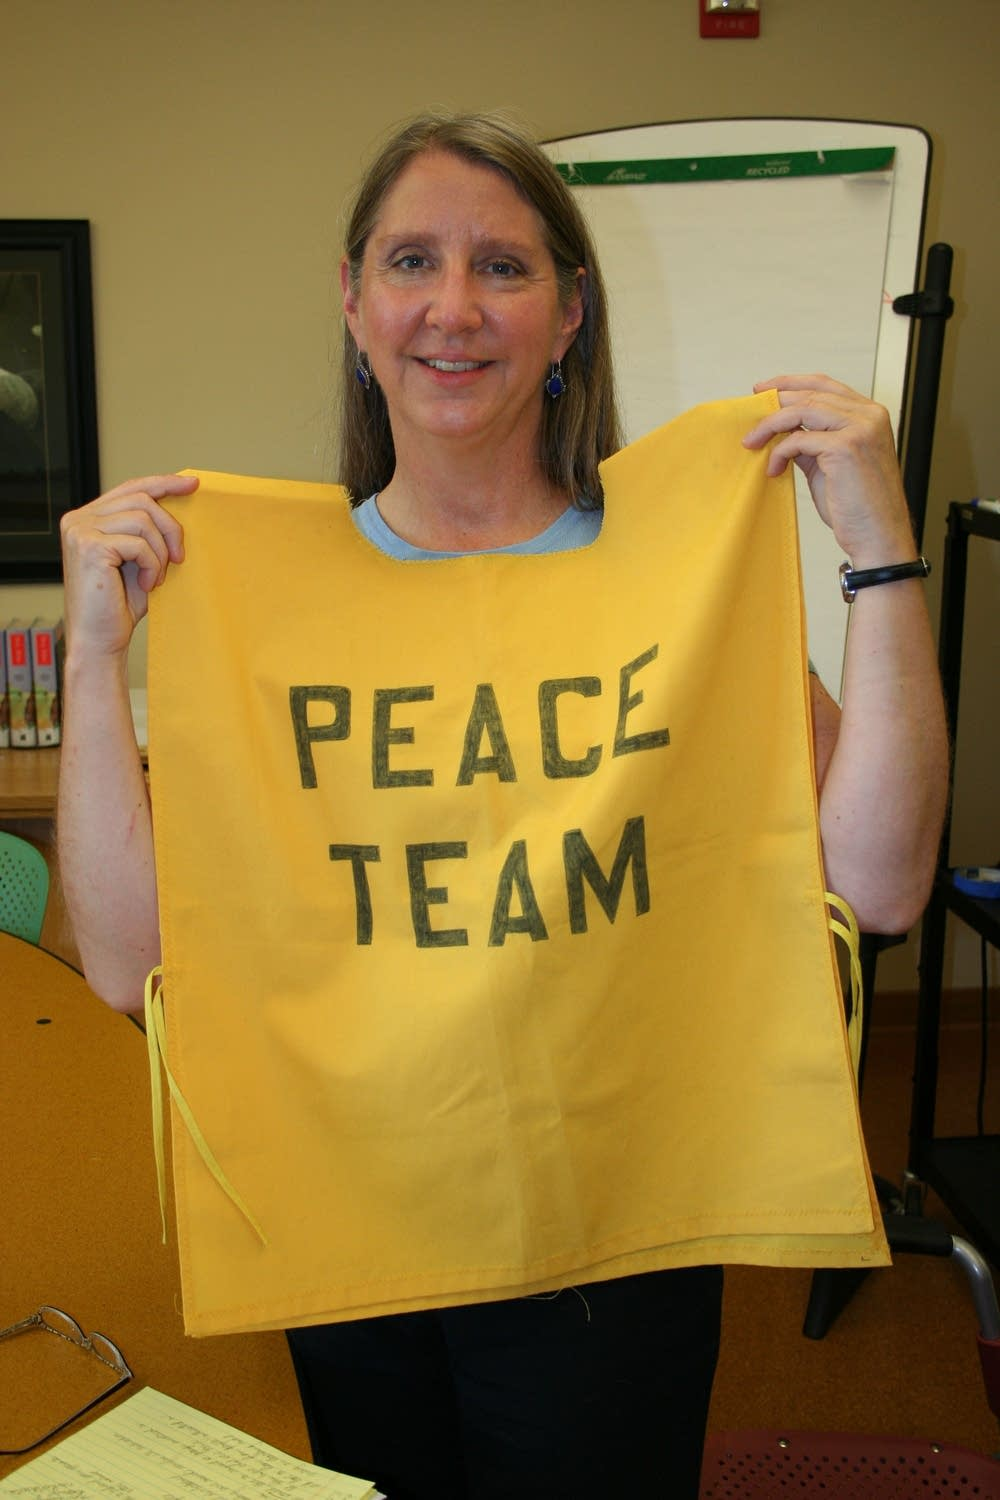 Peace team uniform